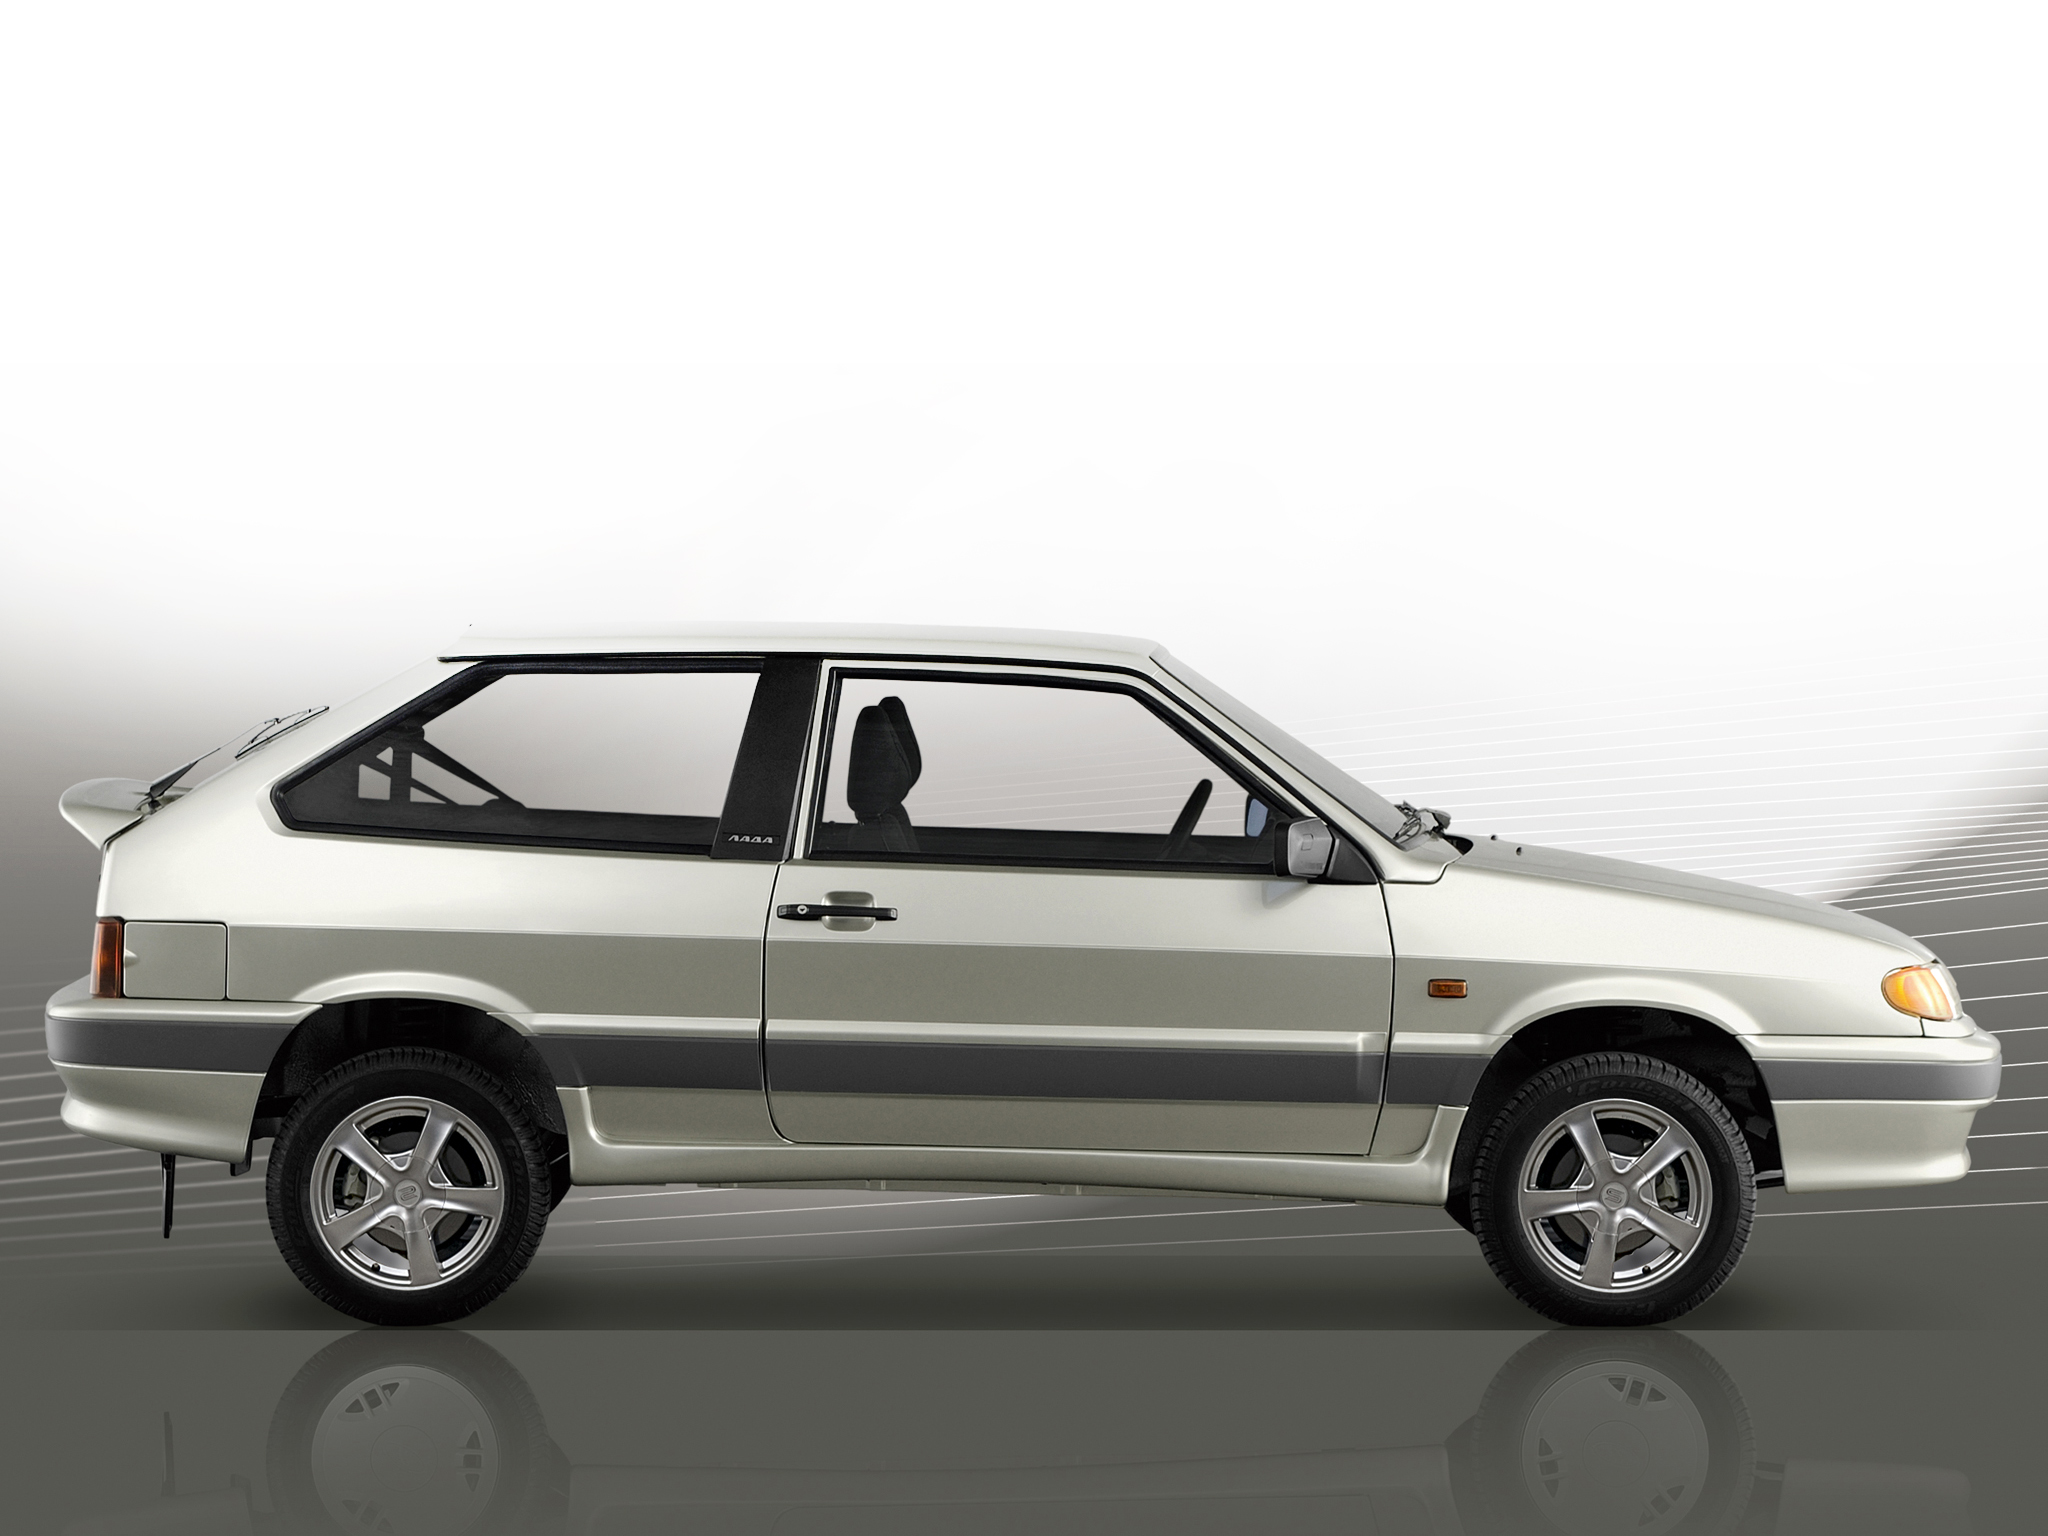 Lada Samara 2113 3 Door Hatchback 2006